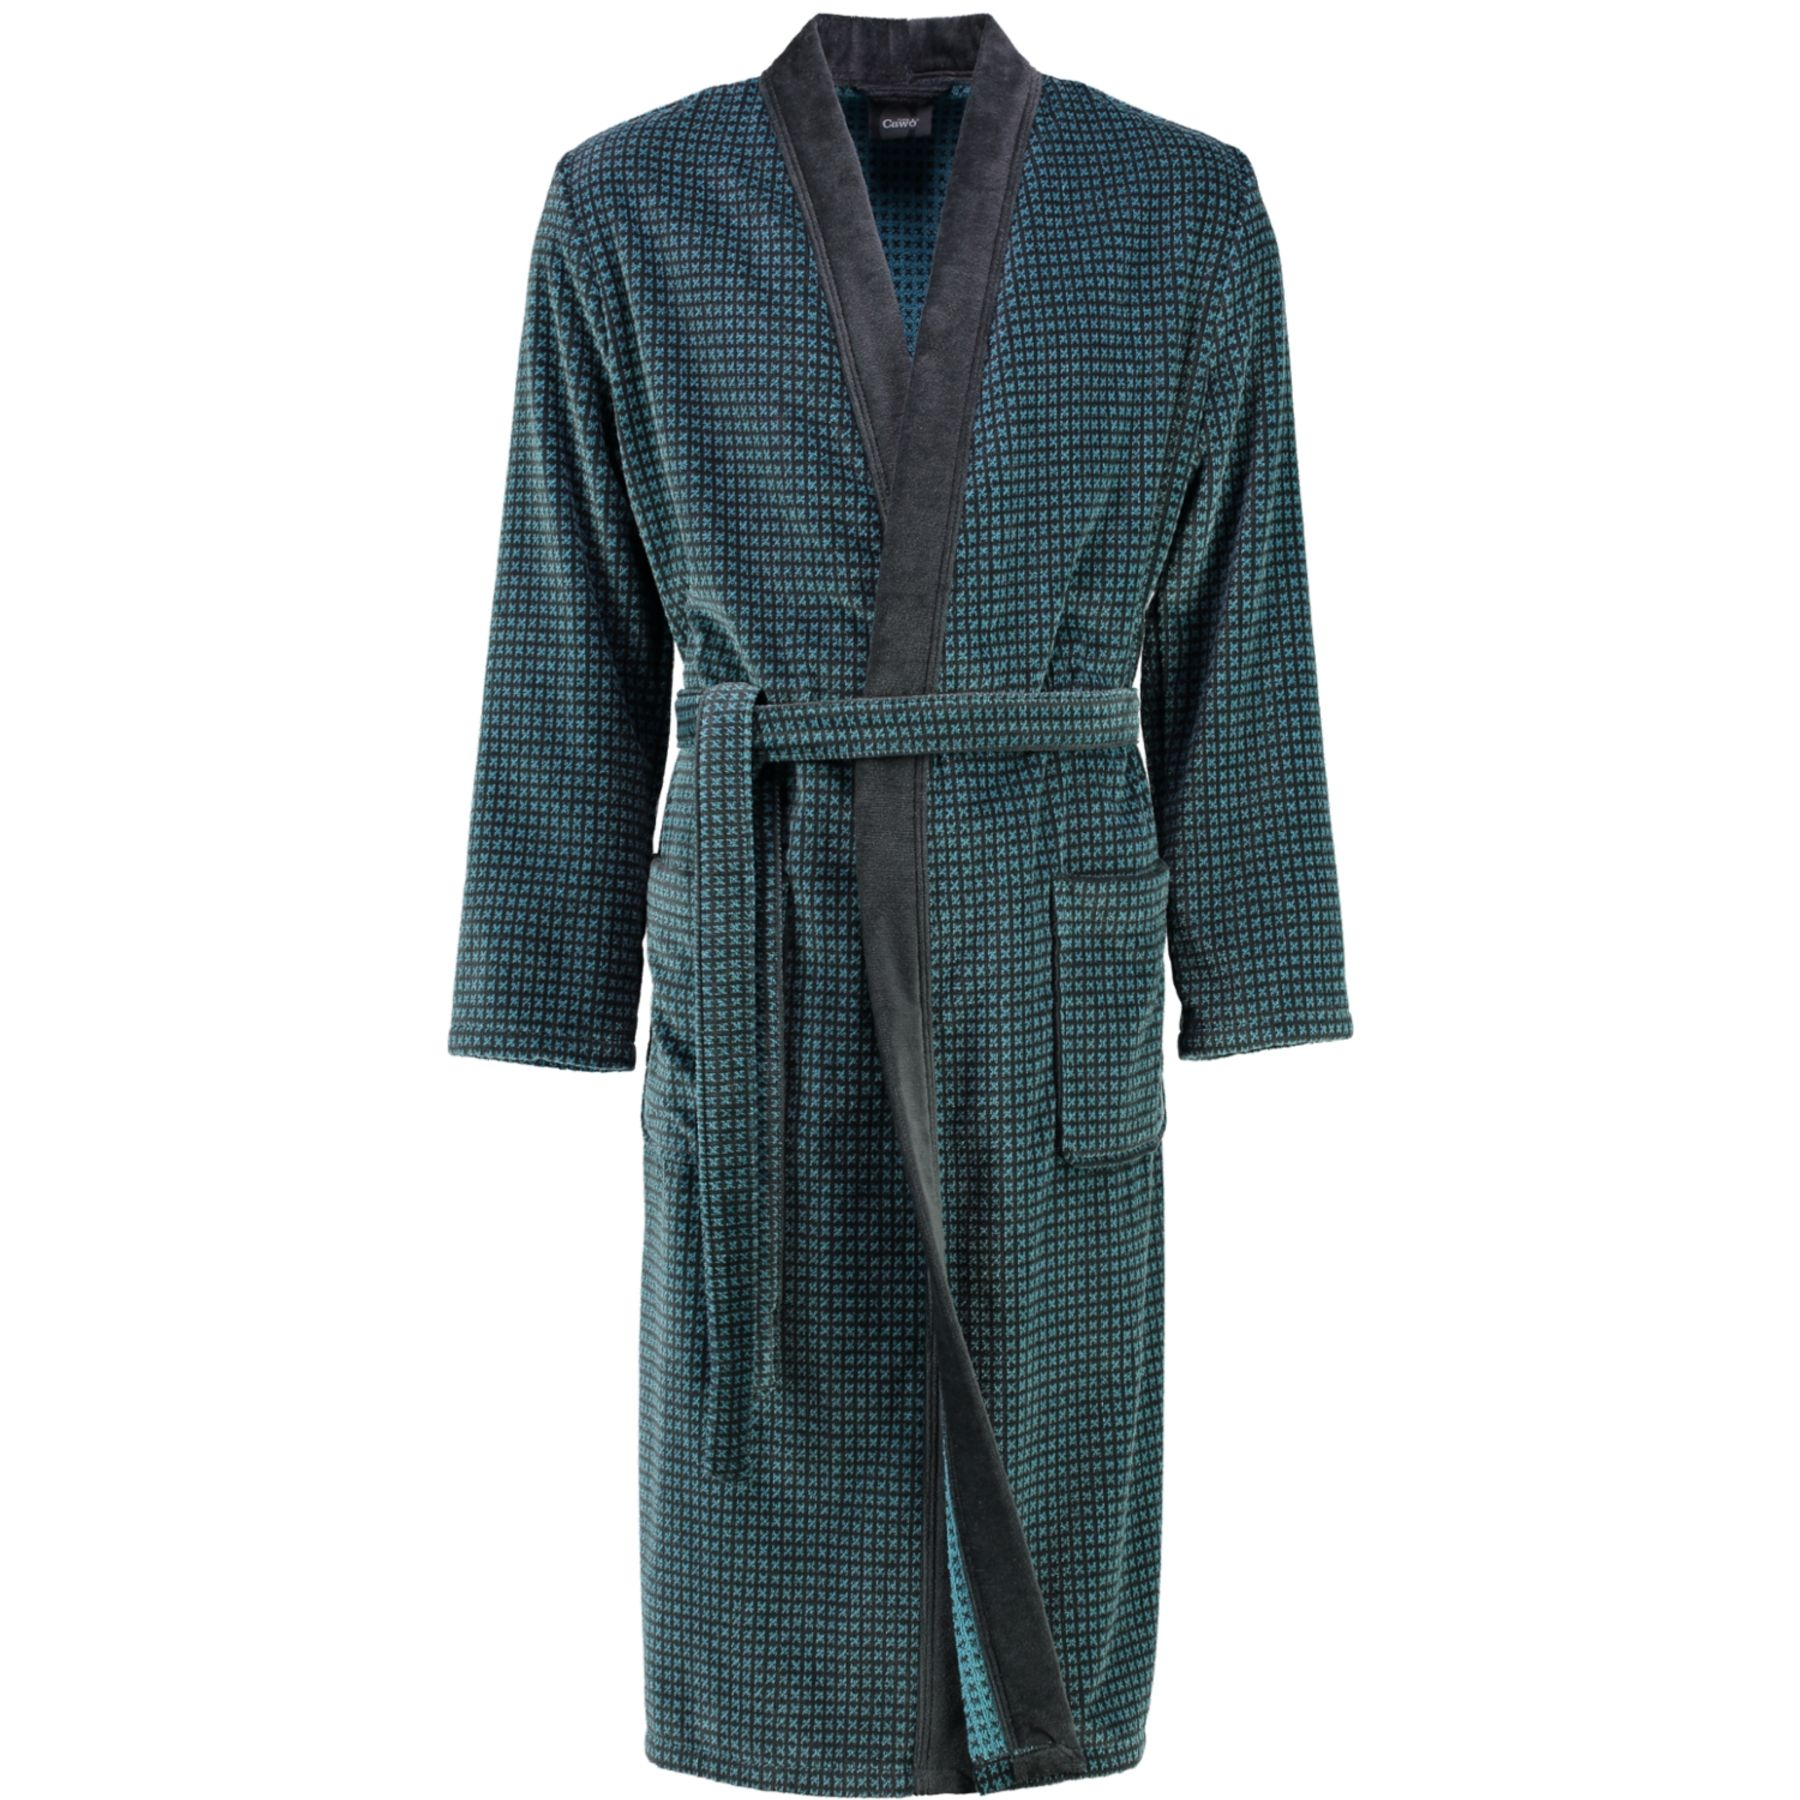 Cawö - Herren Walkvelours Bademantel in Kimono-Form  (4848) – Bild 2